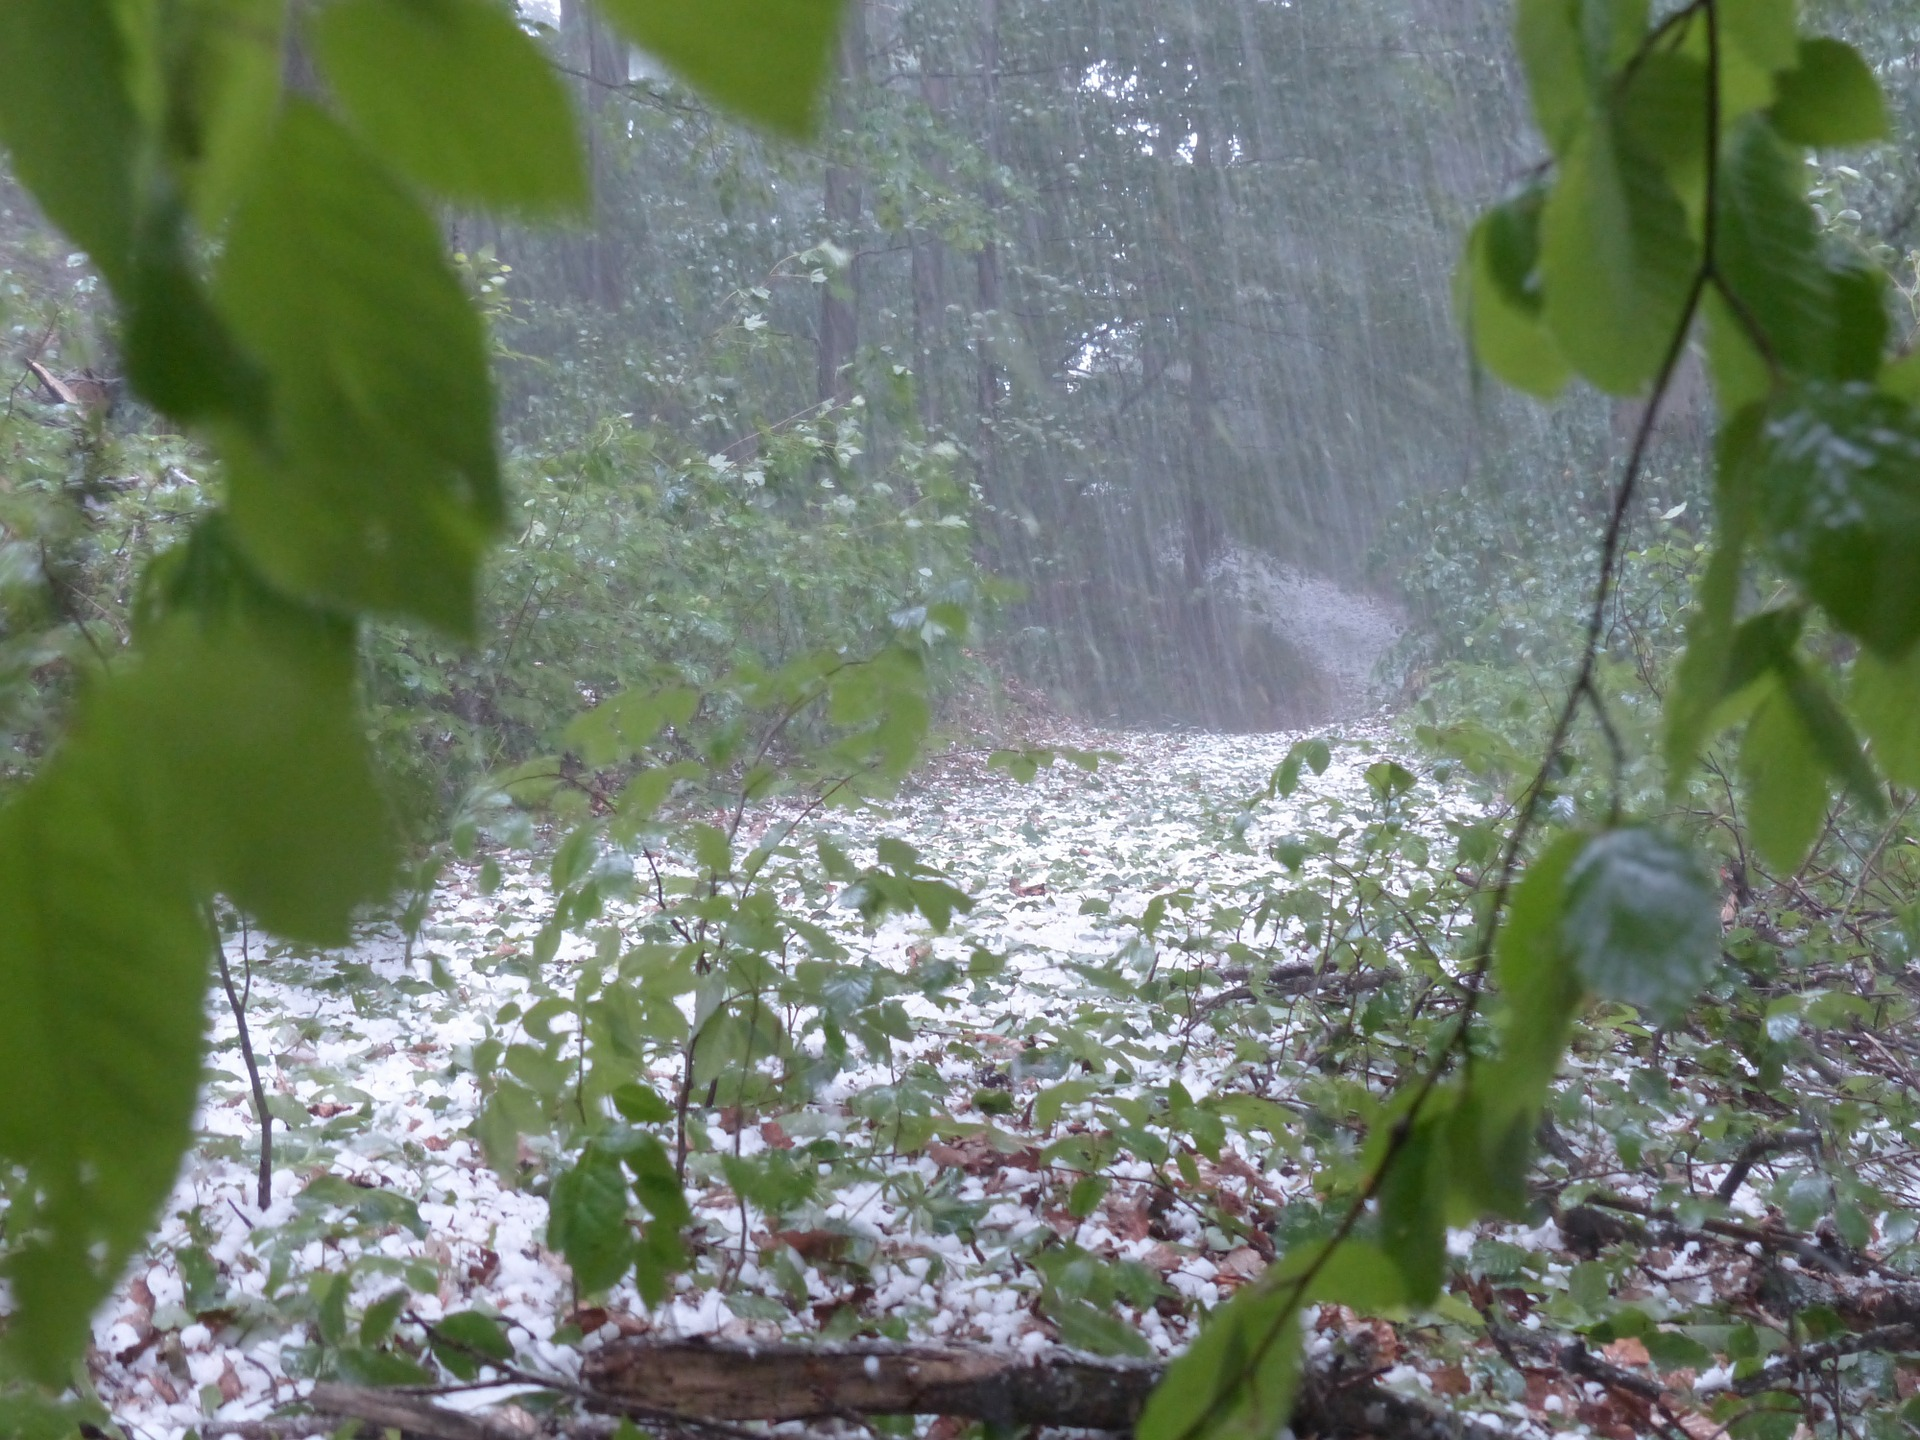 This article covers the next steps after hail storm damage